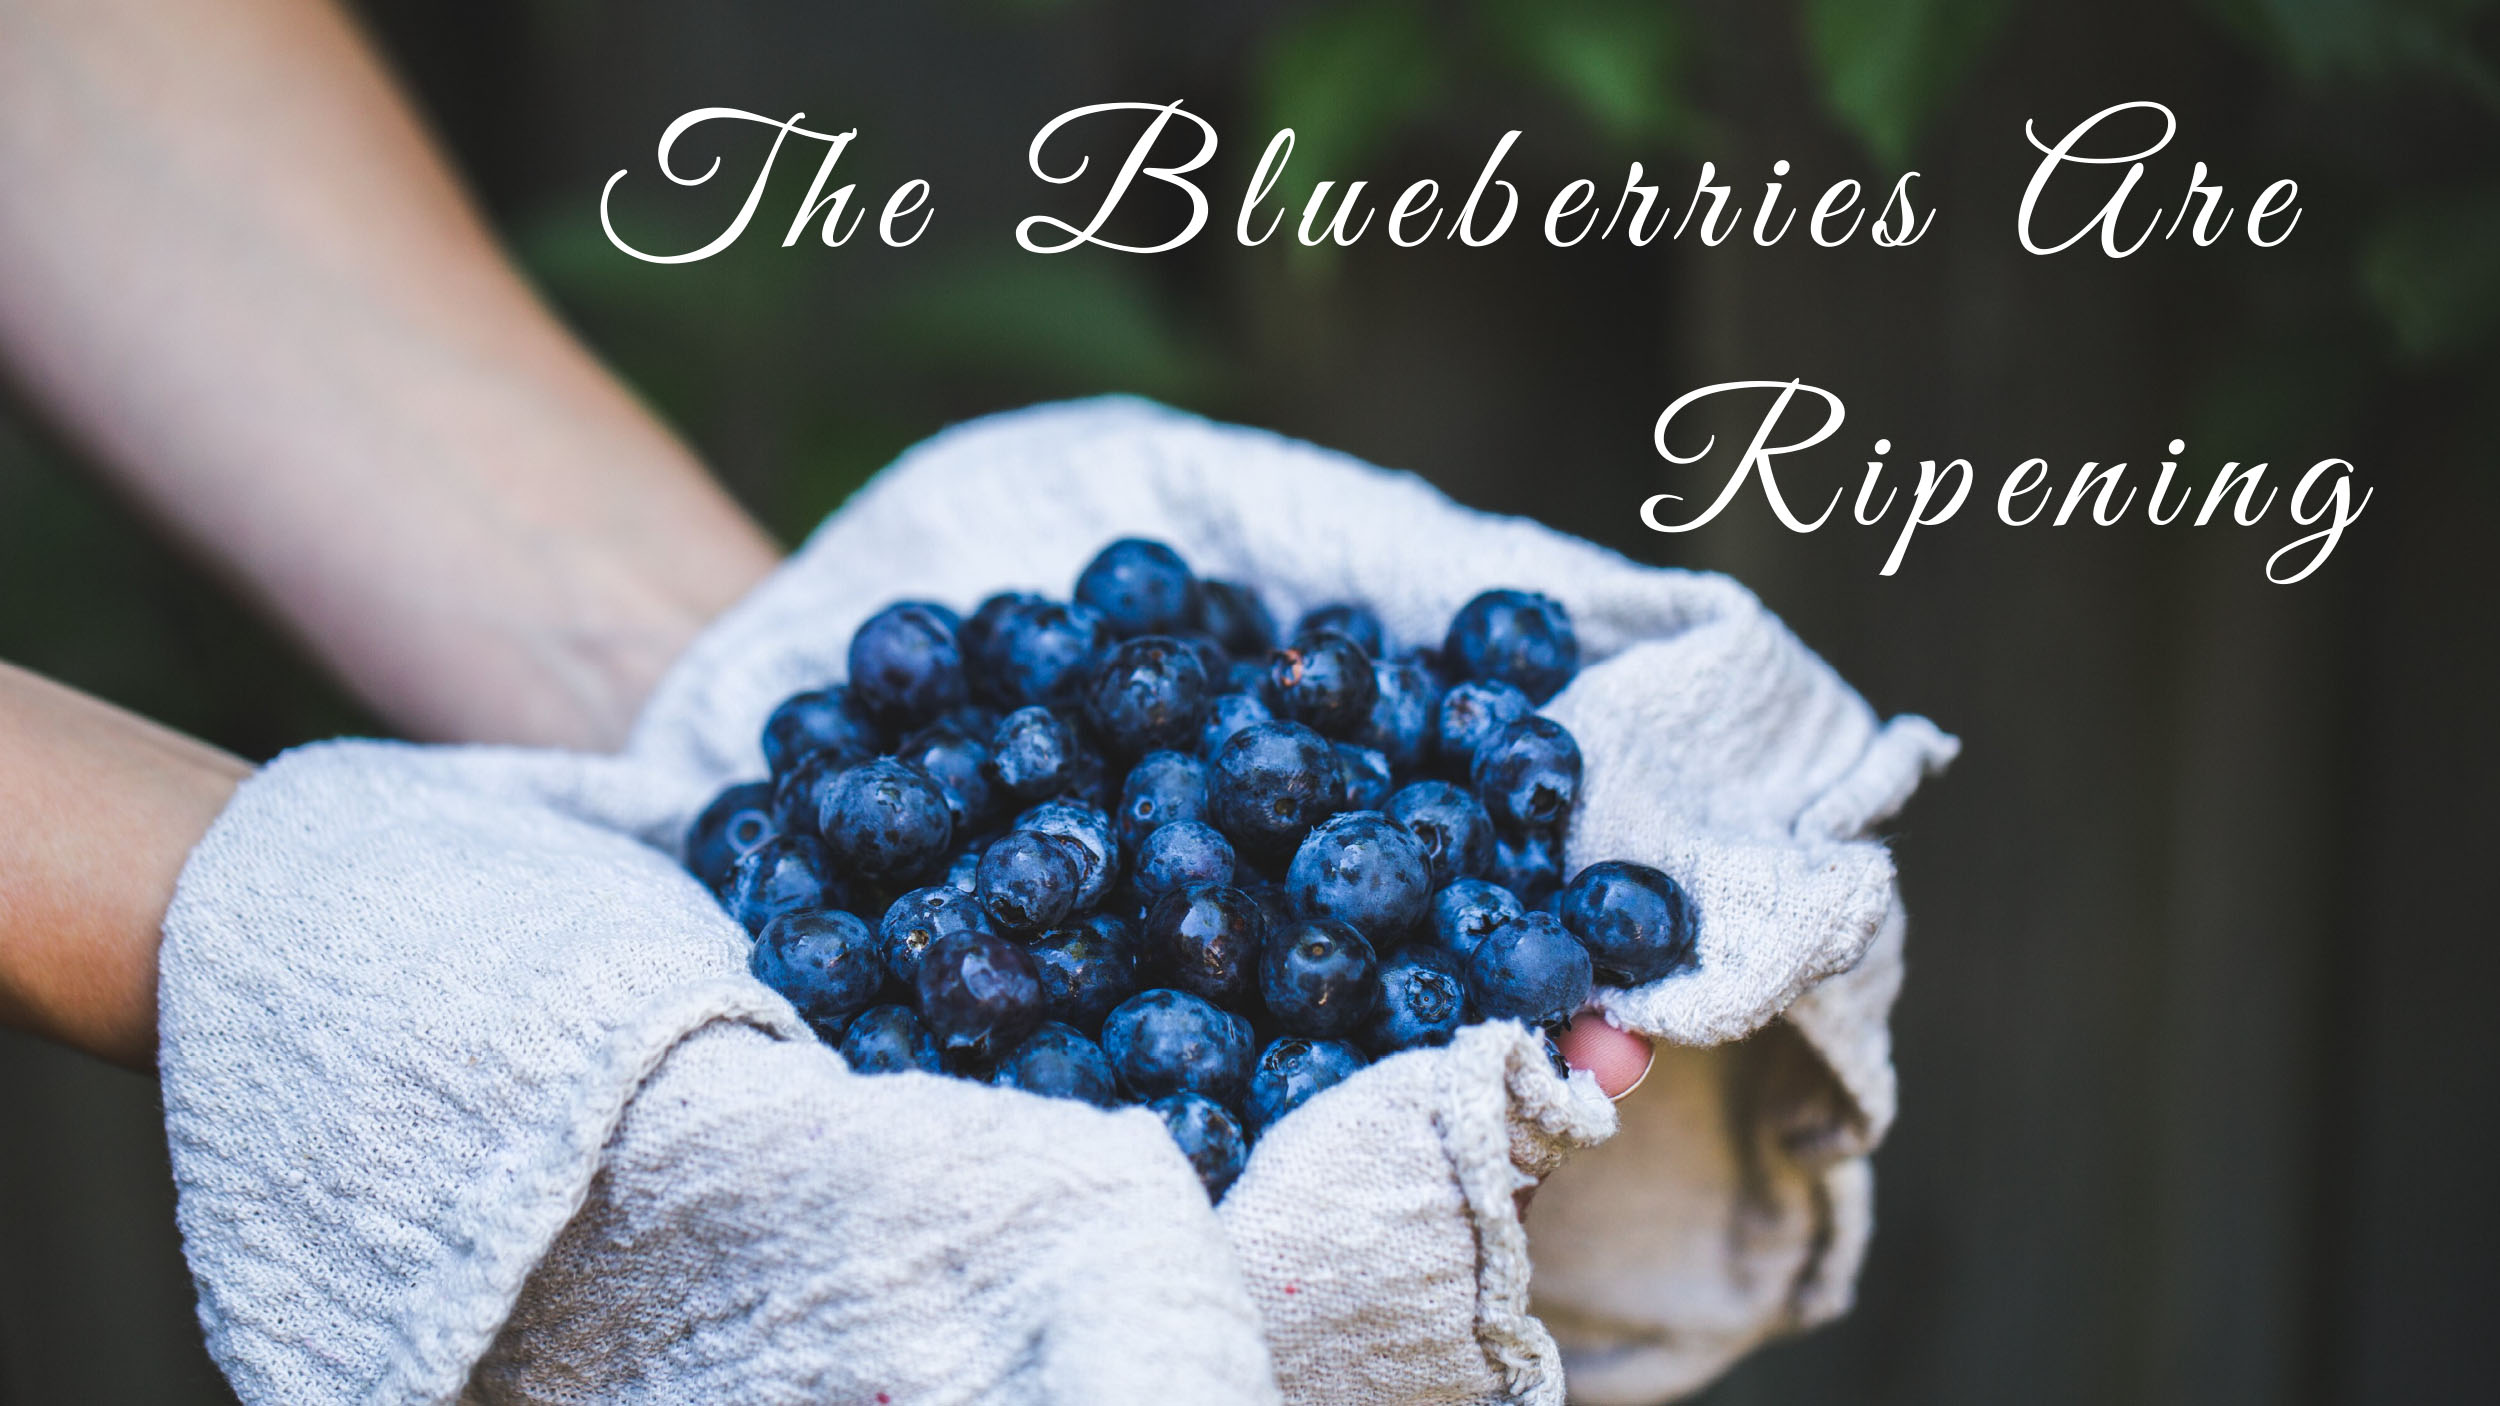 The Blueberries are Ripening